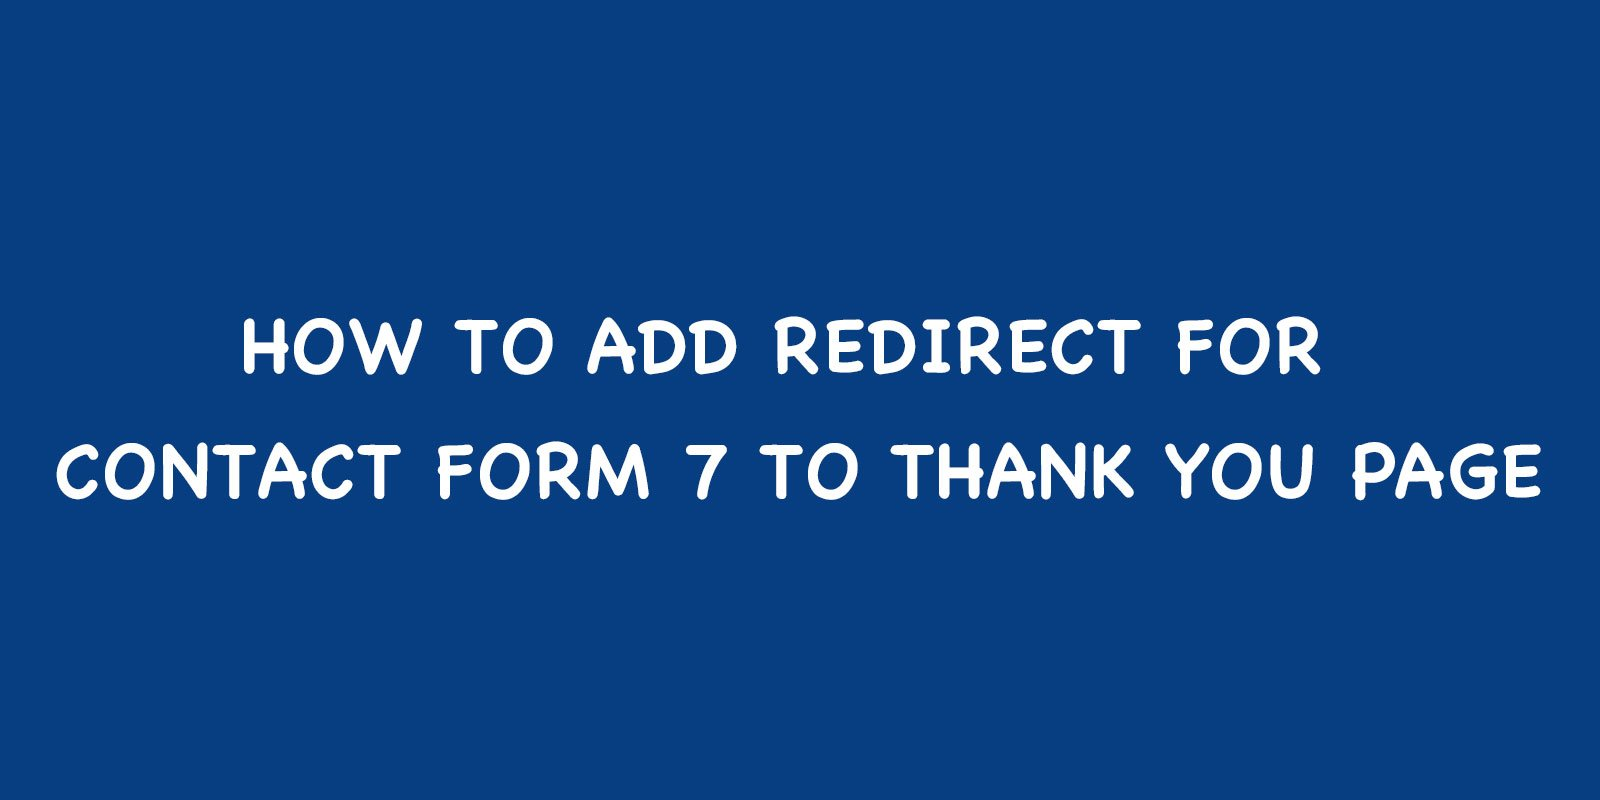 How to Add Redirect for Contact form 7 to thank you page